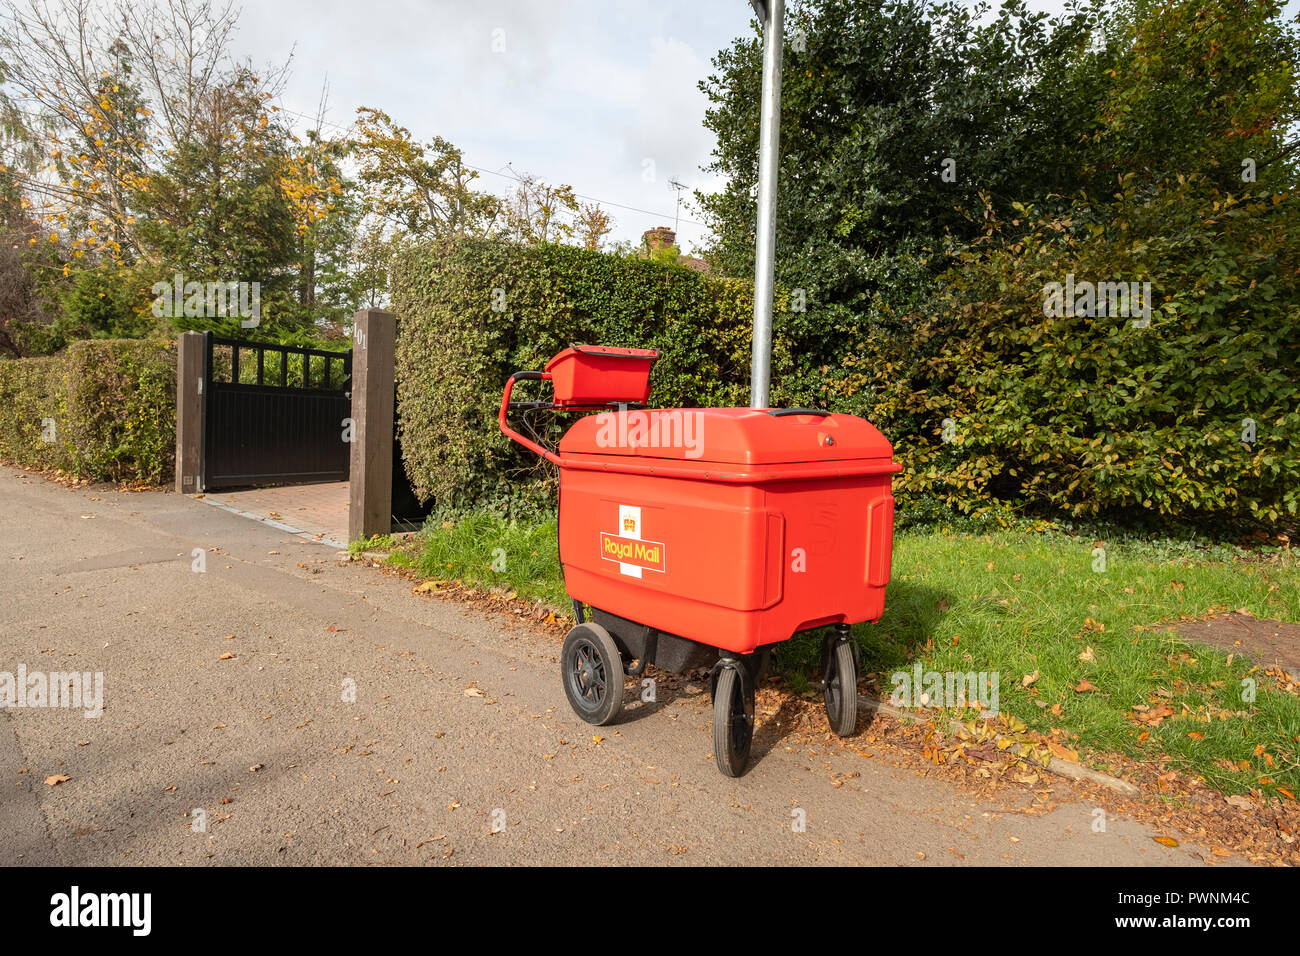 Royal Mail delivery trolley locked or secured on lamppost in Cheshire UK - Stock Image